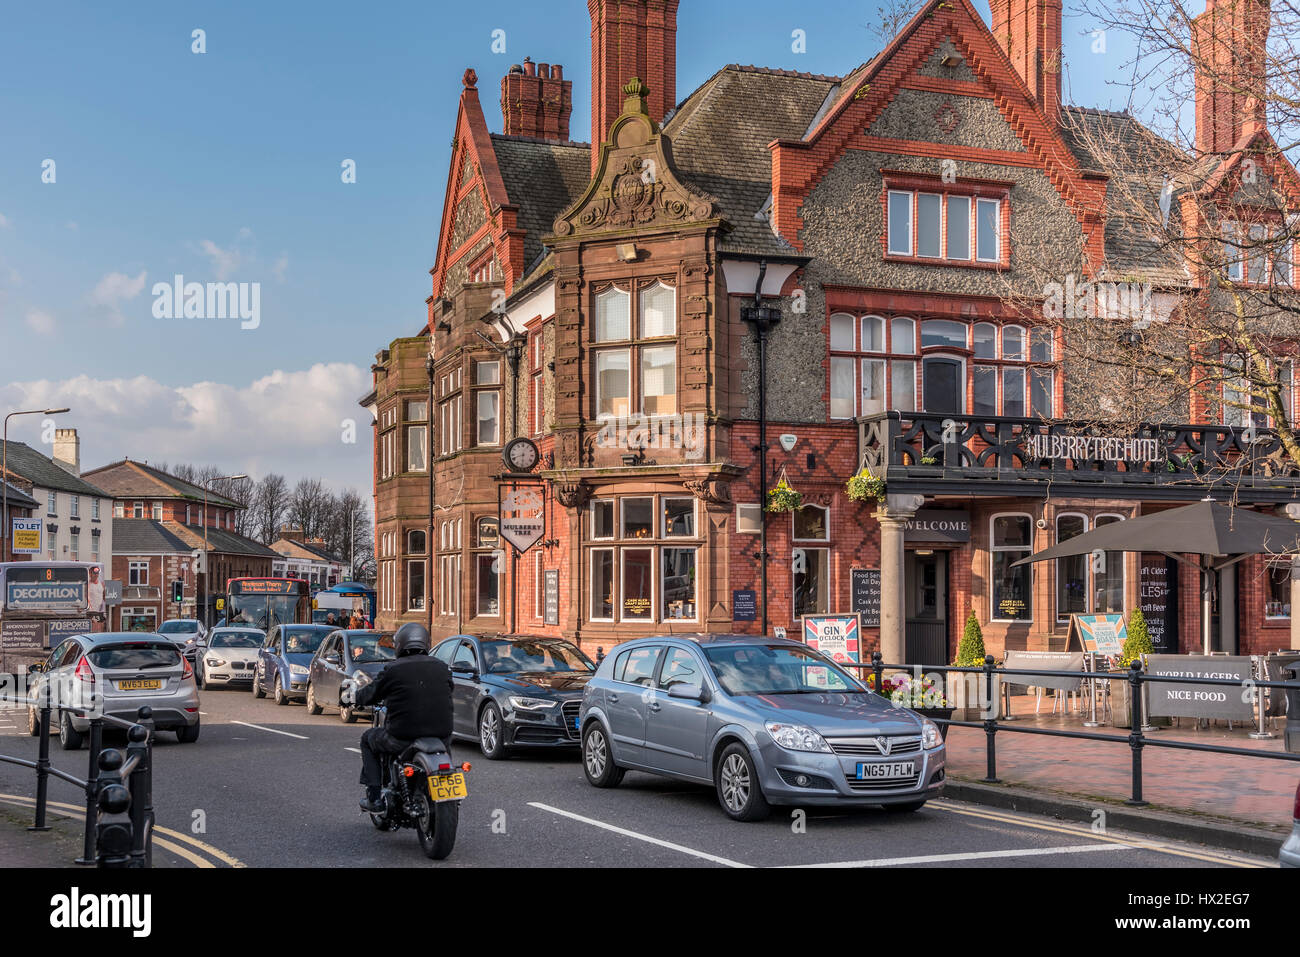 THe centre of Stockton Heath and affluent suburb in the south of Warrington in Cheshire. - Stock Image